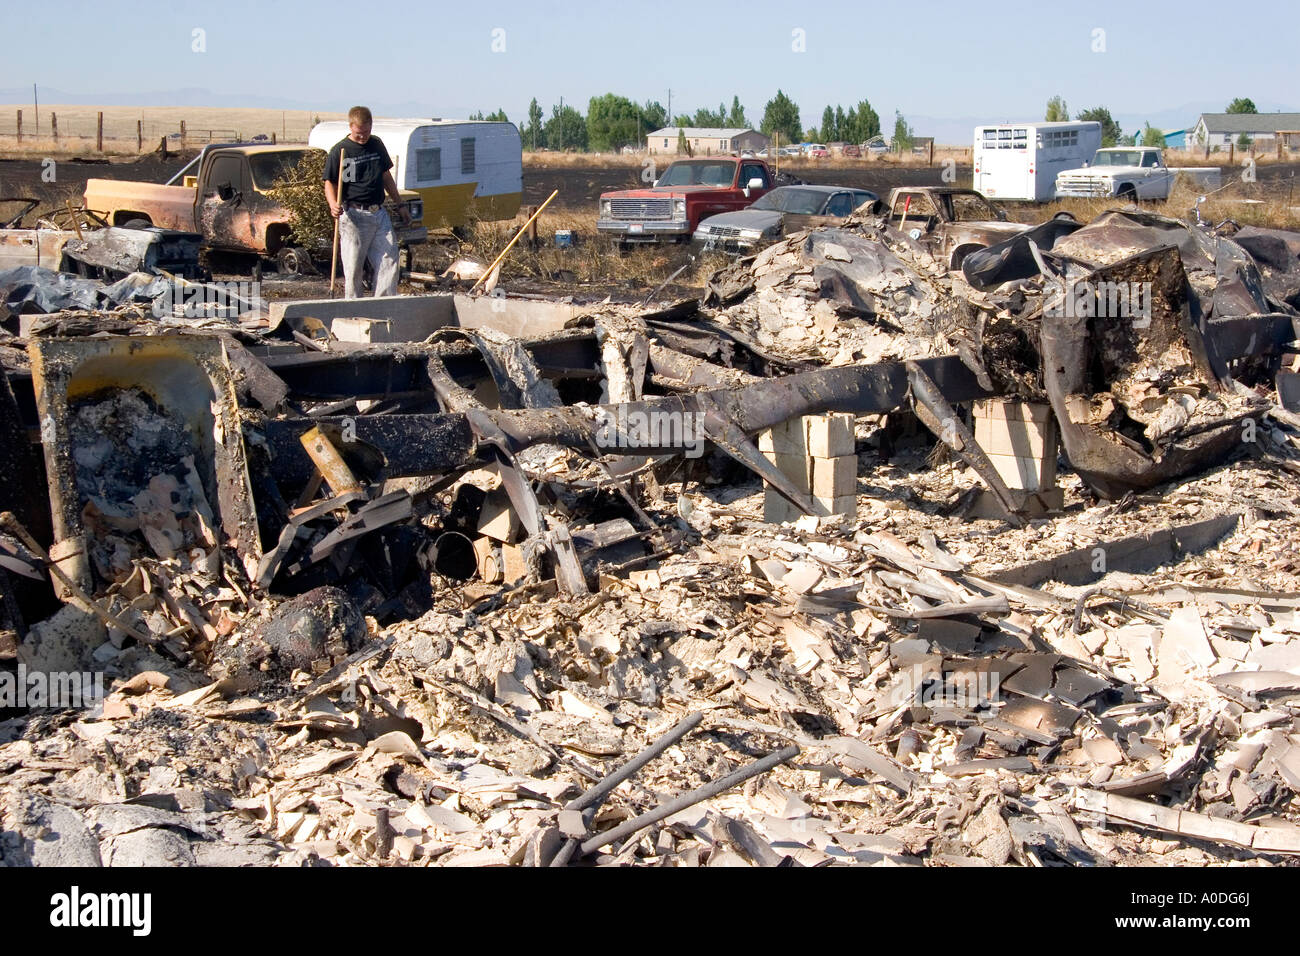 Victims sift through the rubble of a home destroyed by wildfire near Mountain Home Idaho Stock Photo